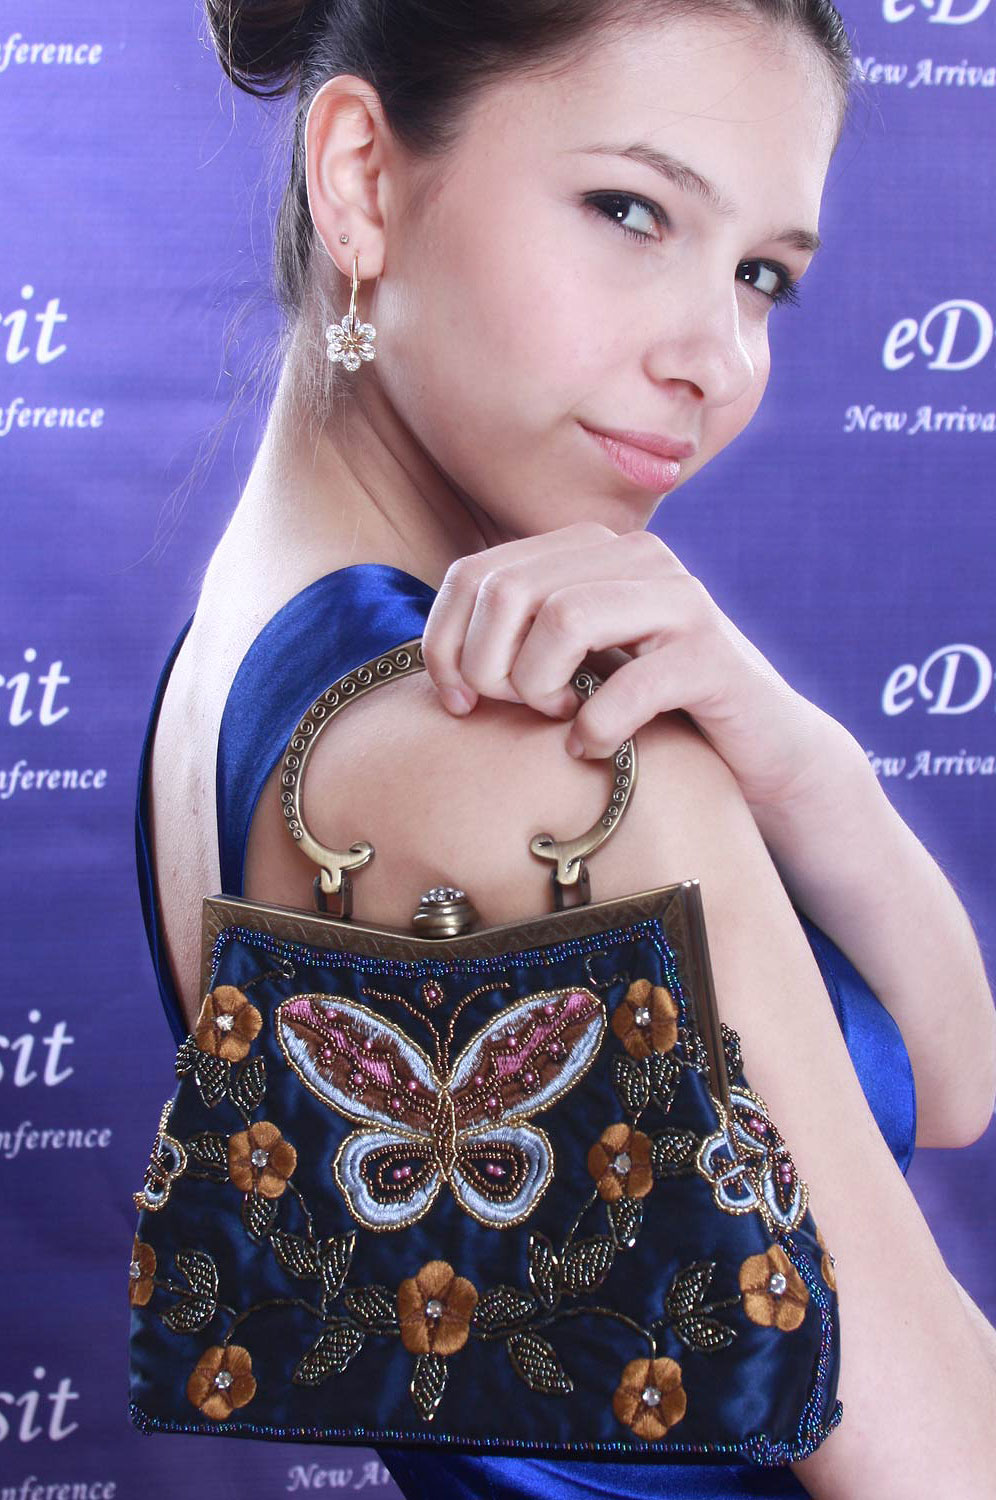 eDressit butterfly shape sequins Lady's Handbag/Purse (08091105)